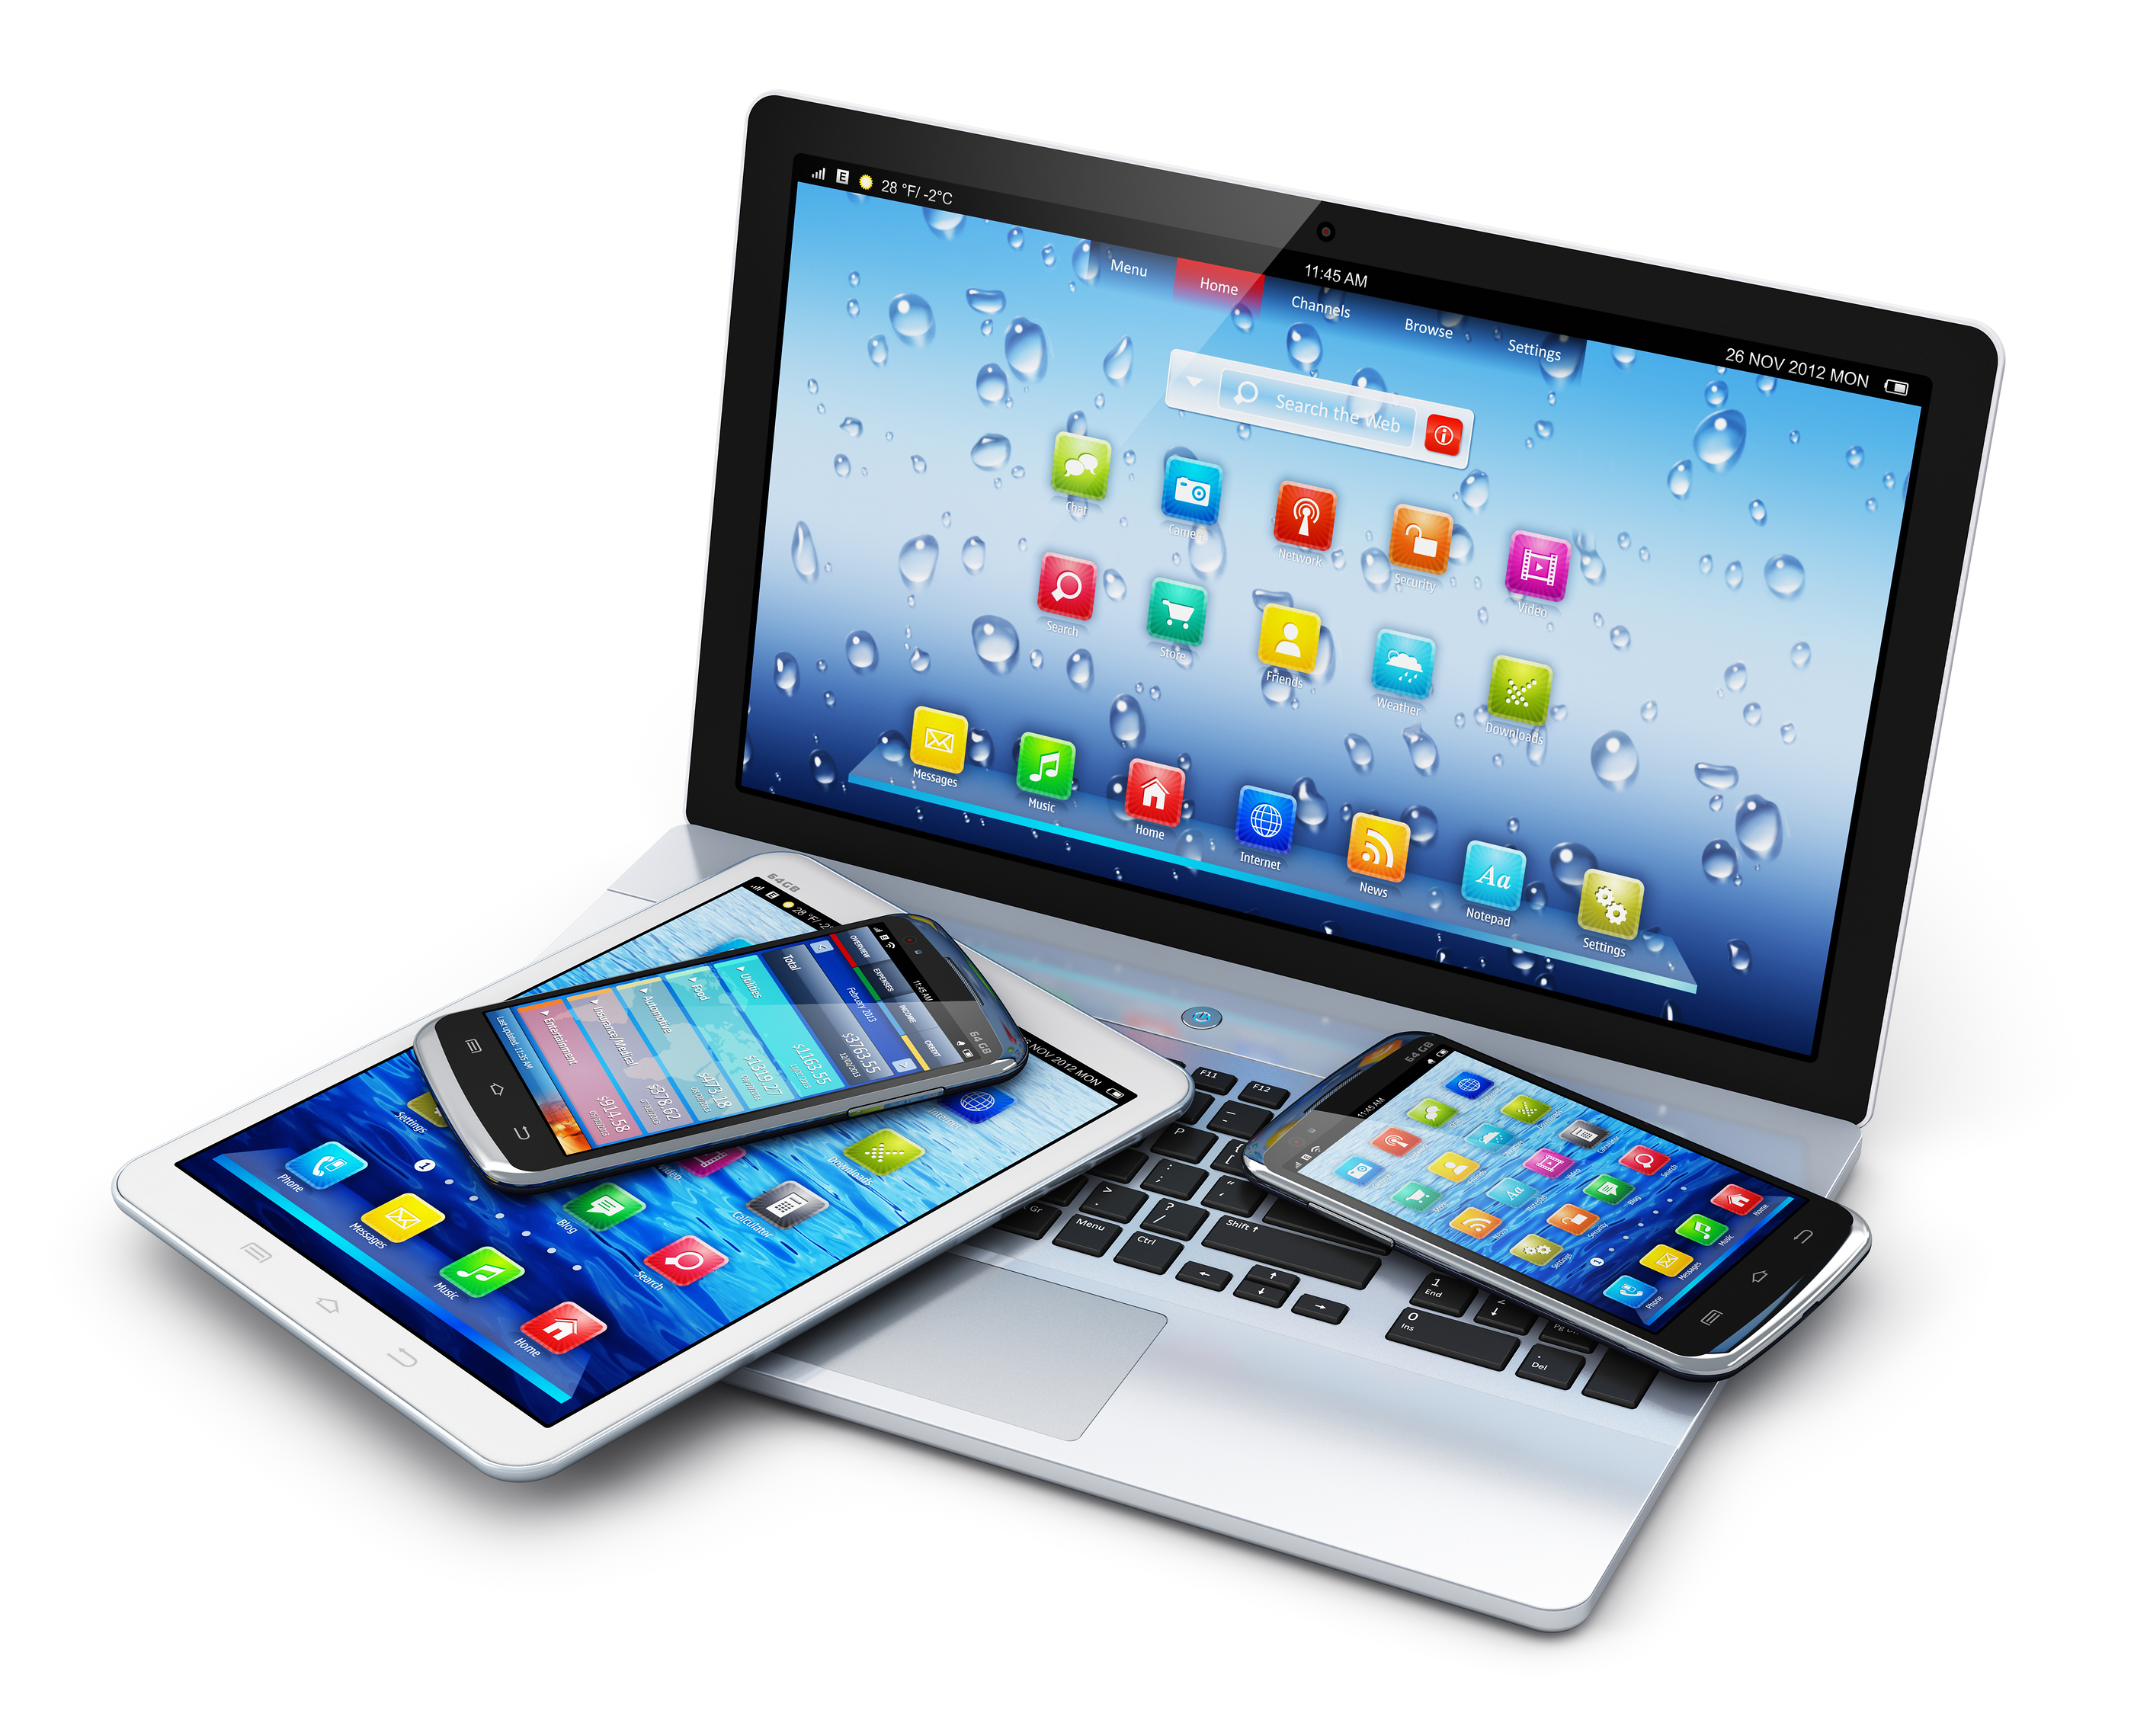 bigstock-Mobile-devices-44827912.jpg